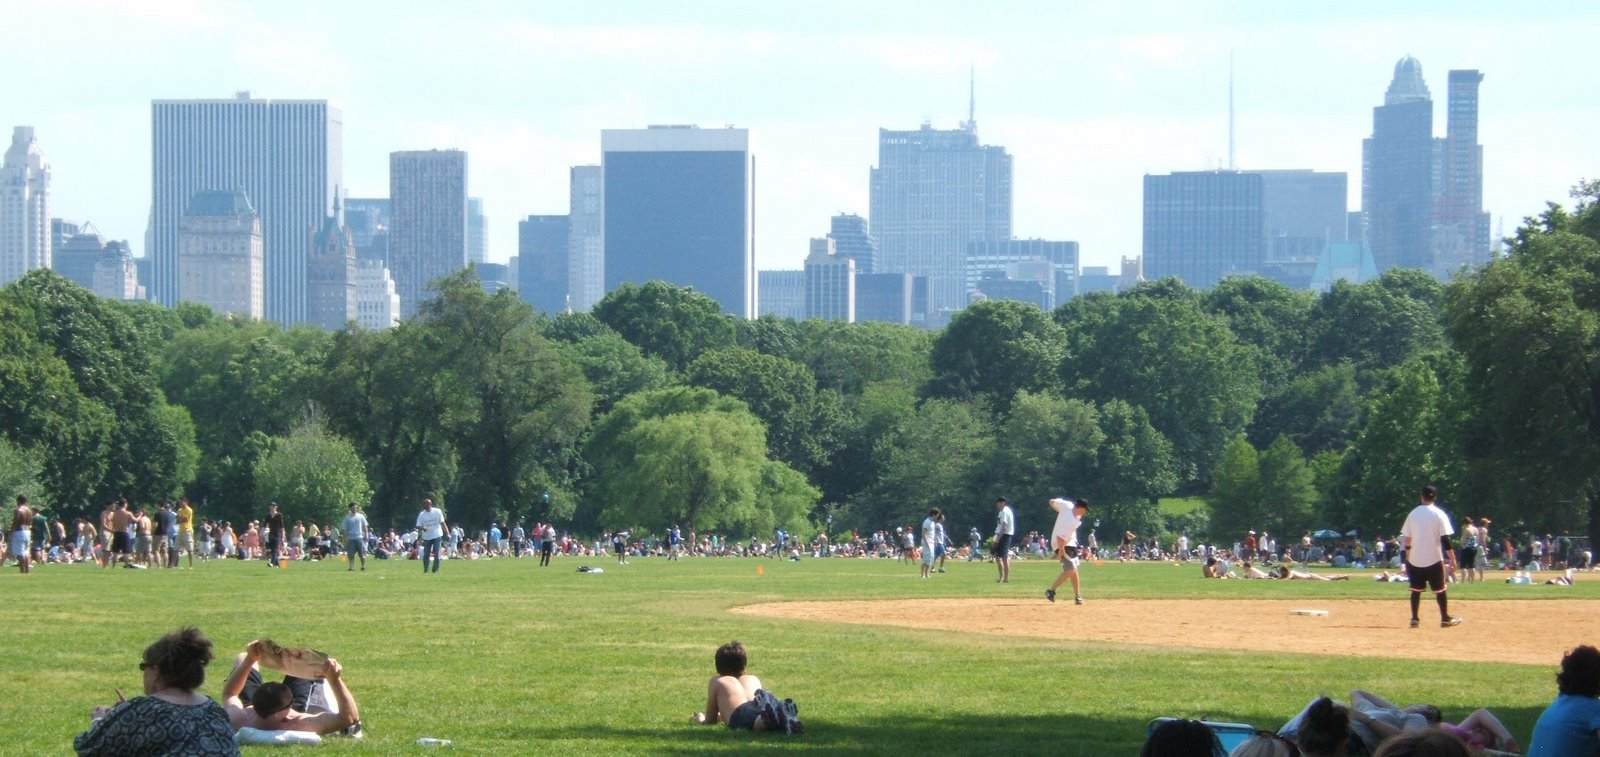 Central Park, New York ©2008 Tina M Welter  Spring and baseball games in the park.